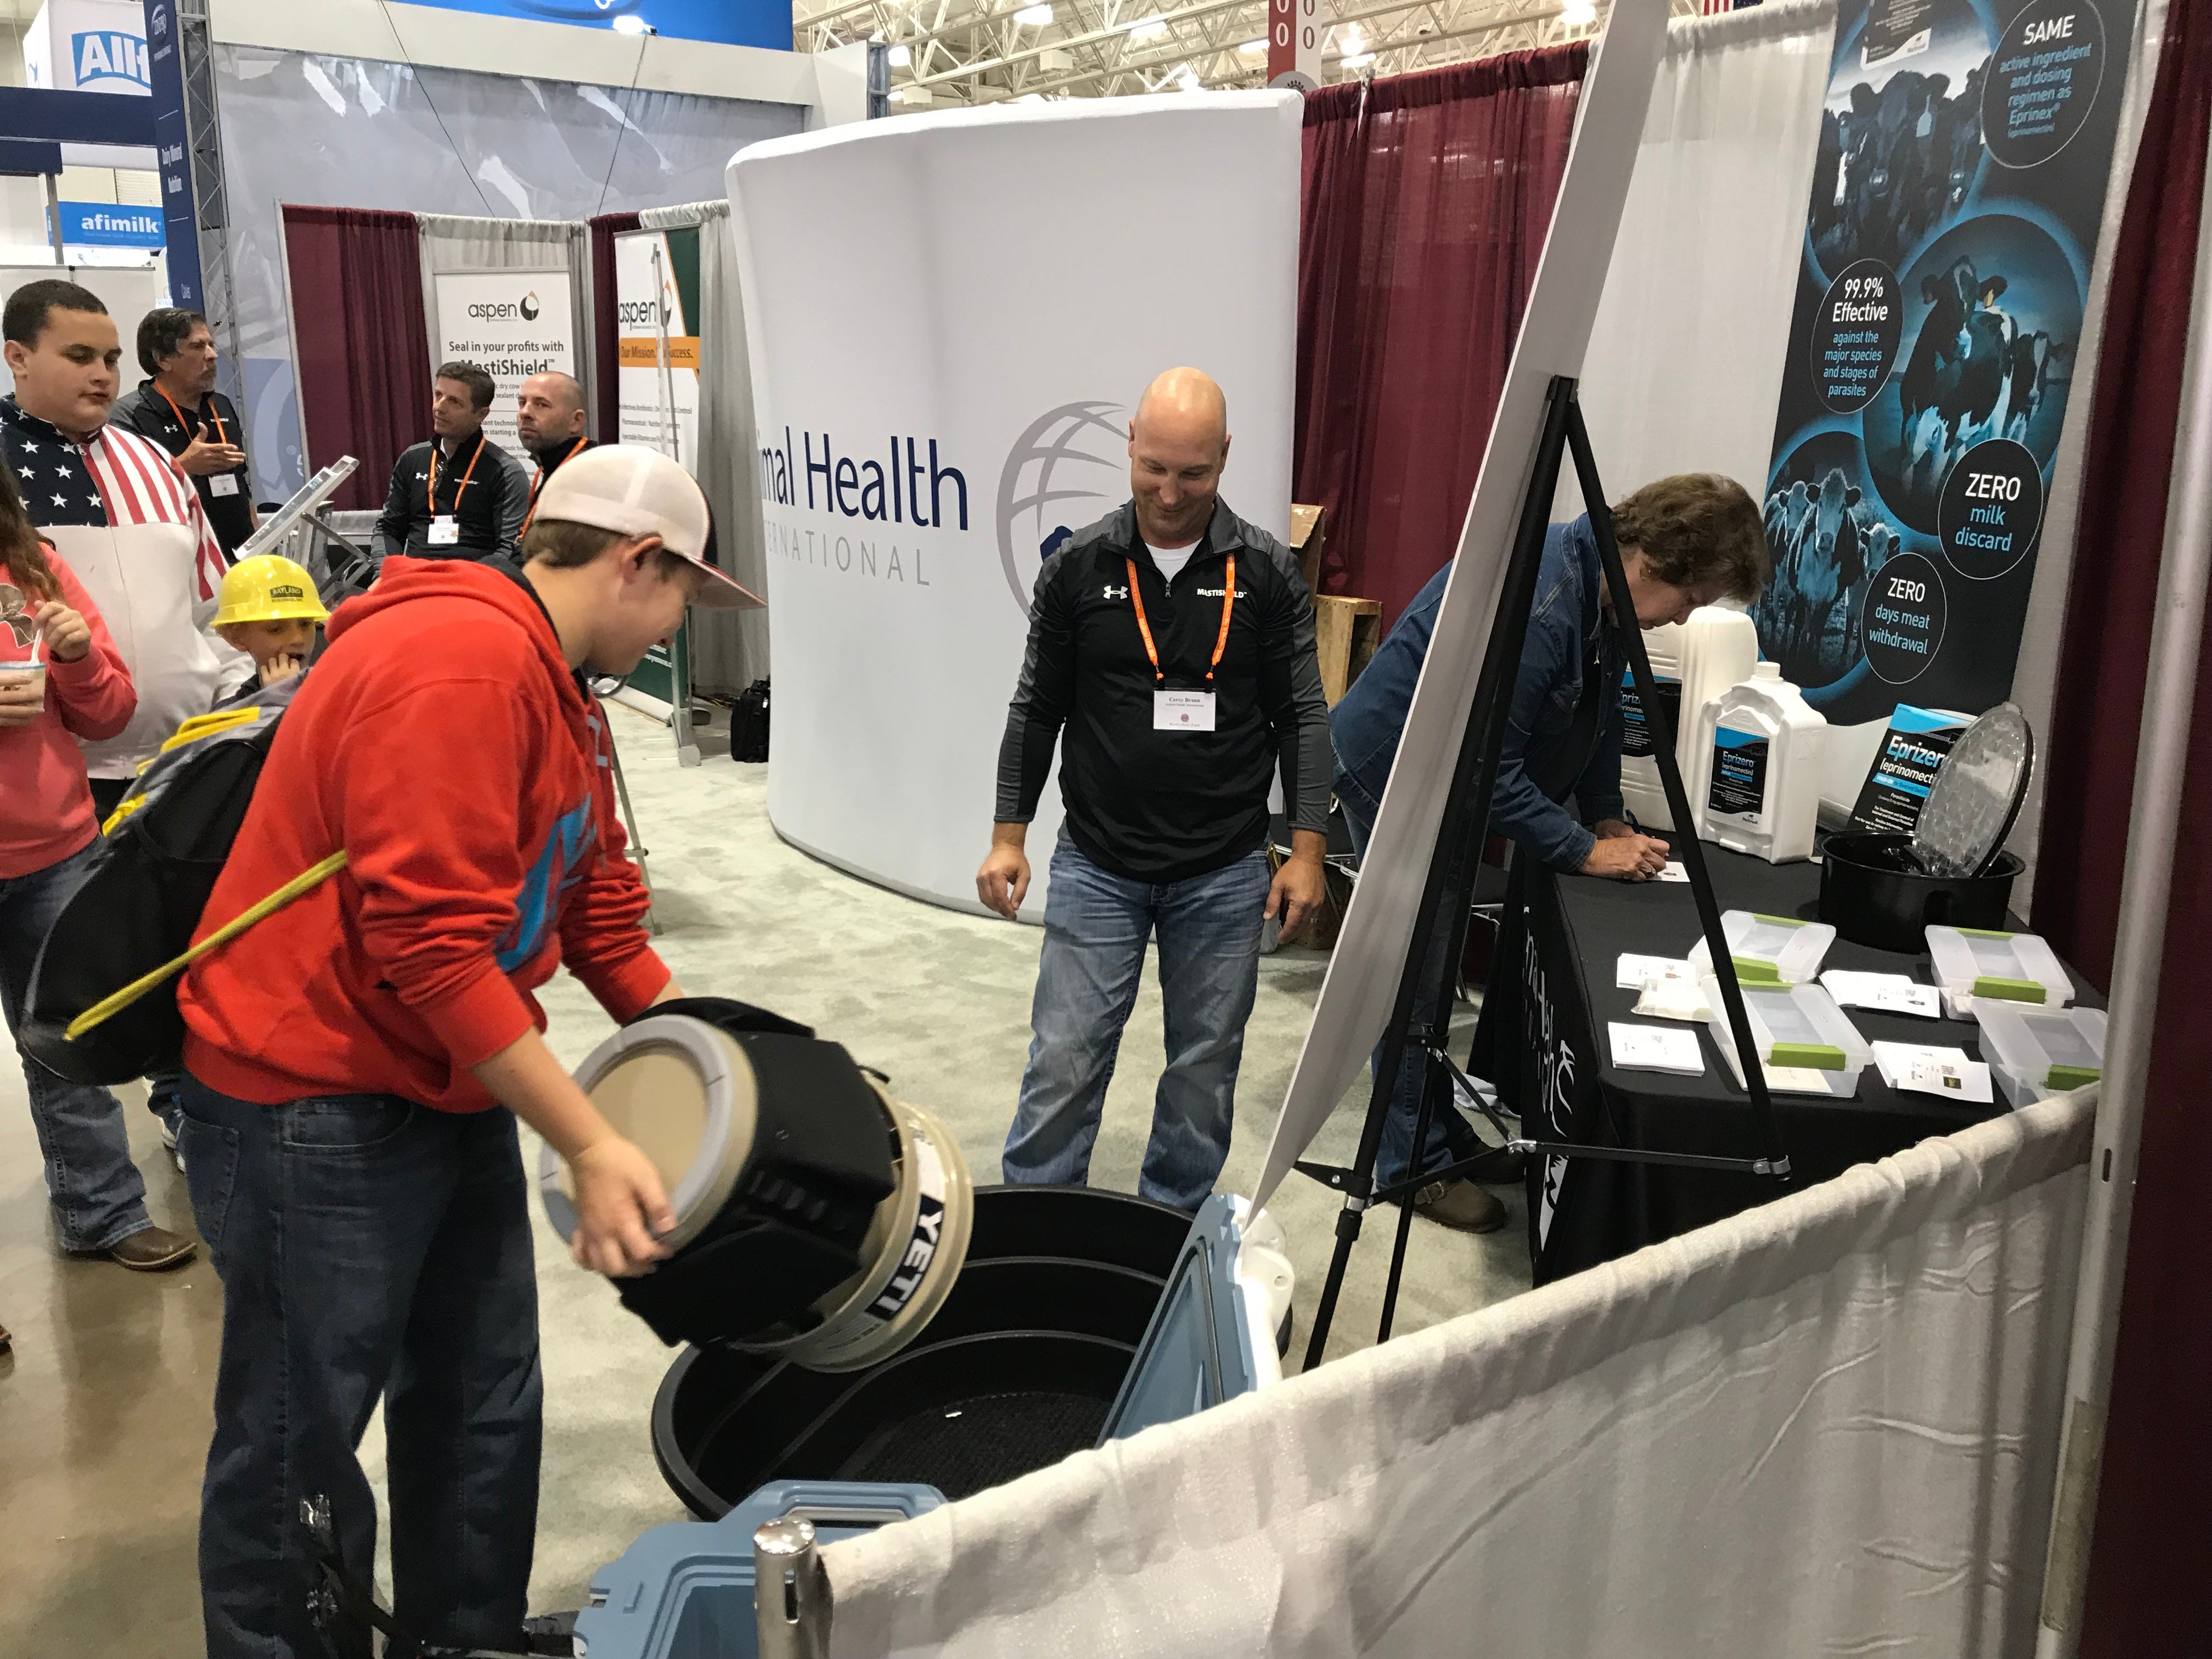 Kids will do anything to win swag at the trade show.